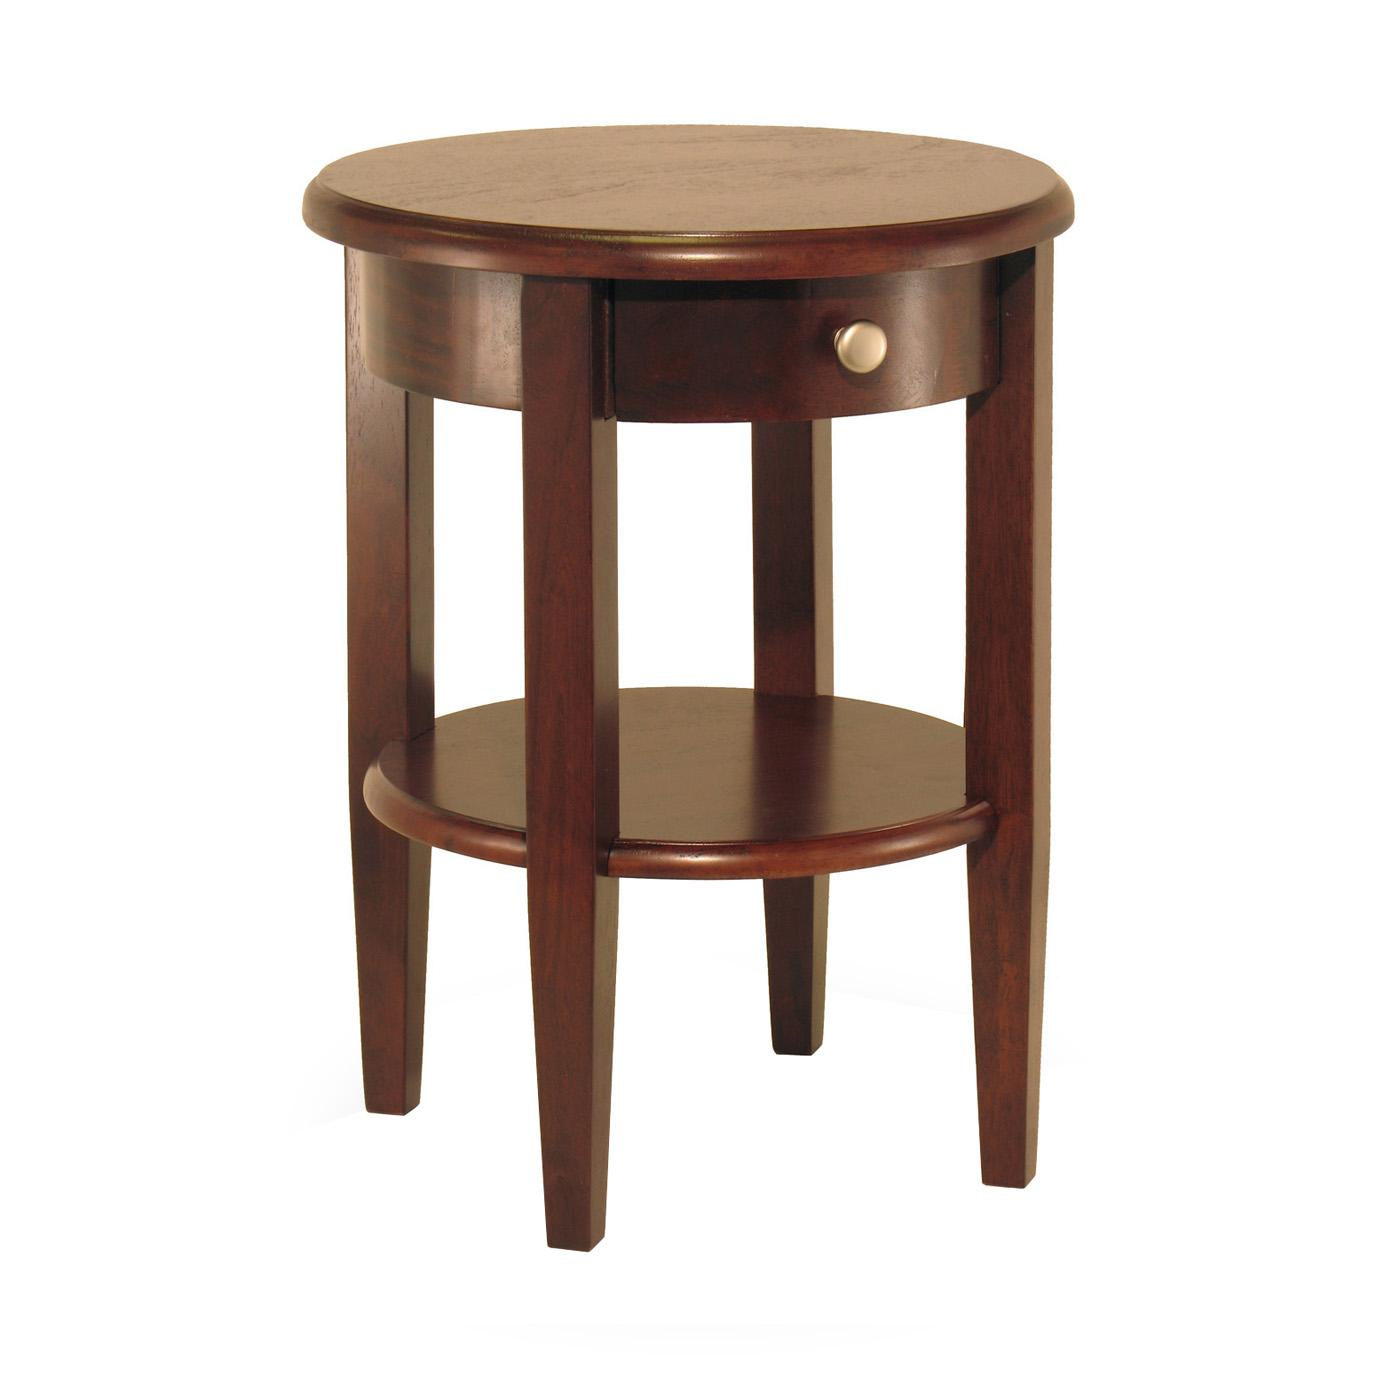 Circular End Tables Winsome Concord Round End Table With Drawer And Shelf By